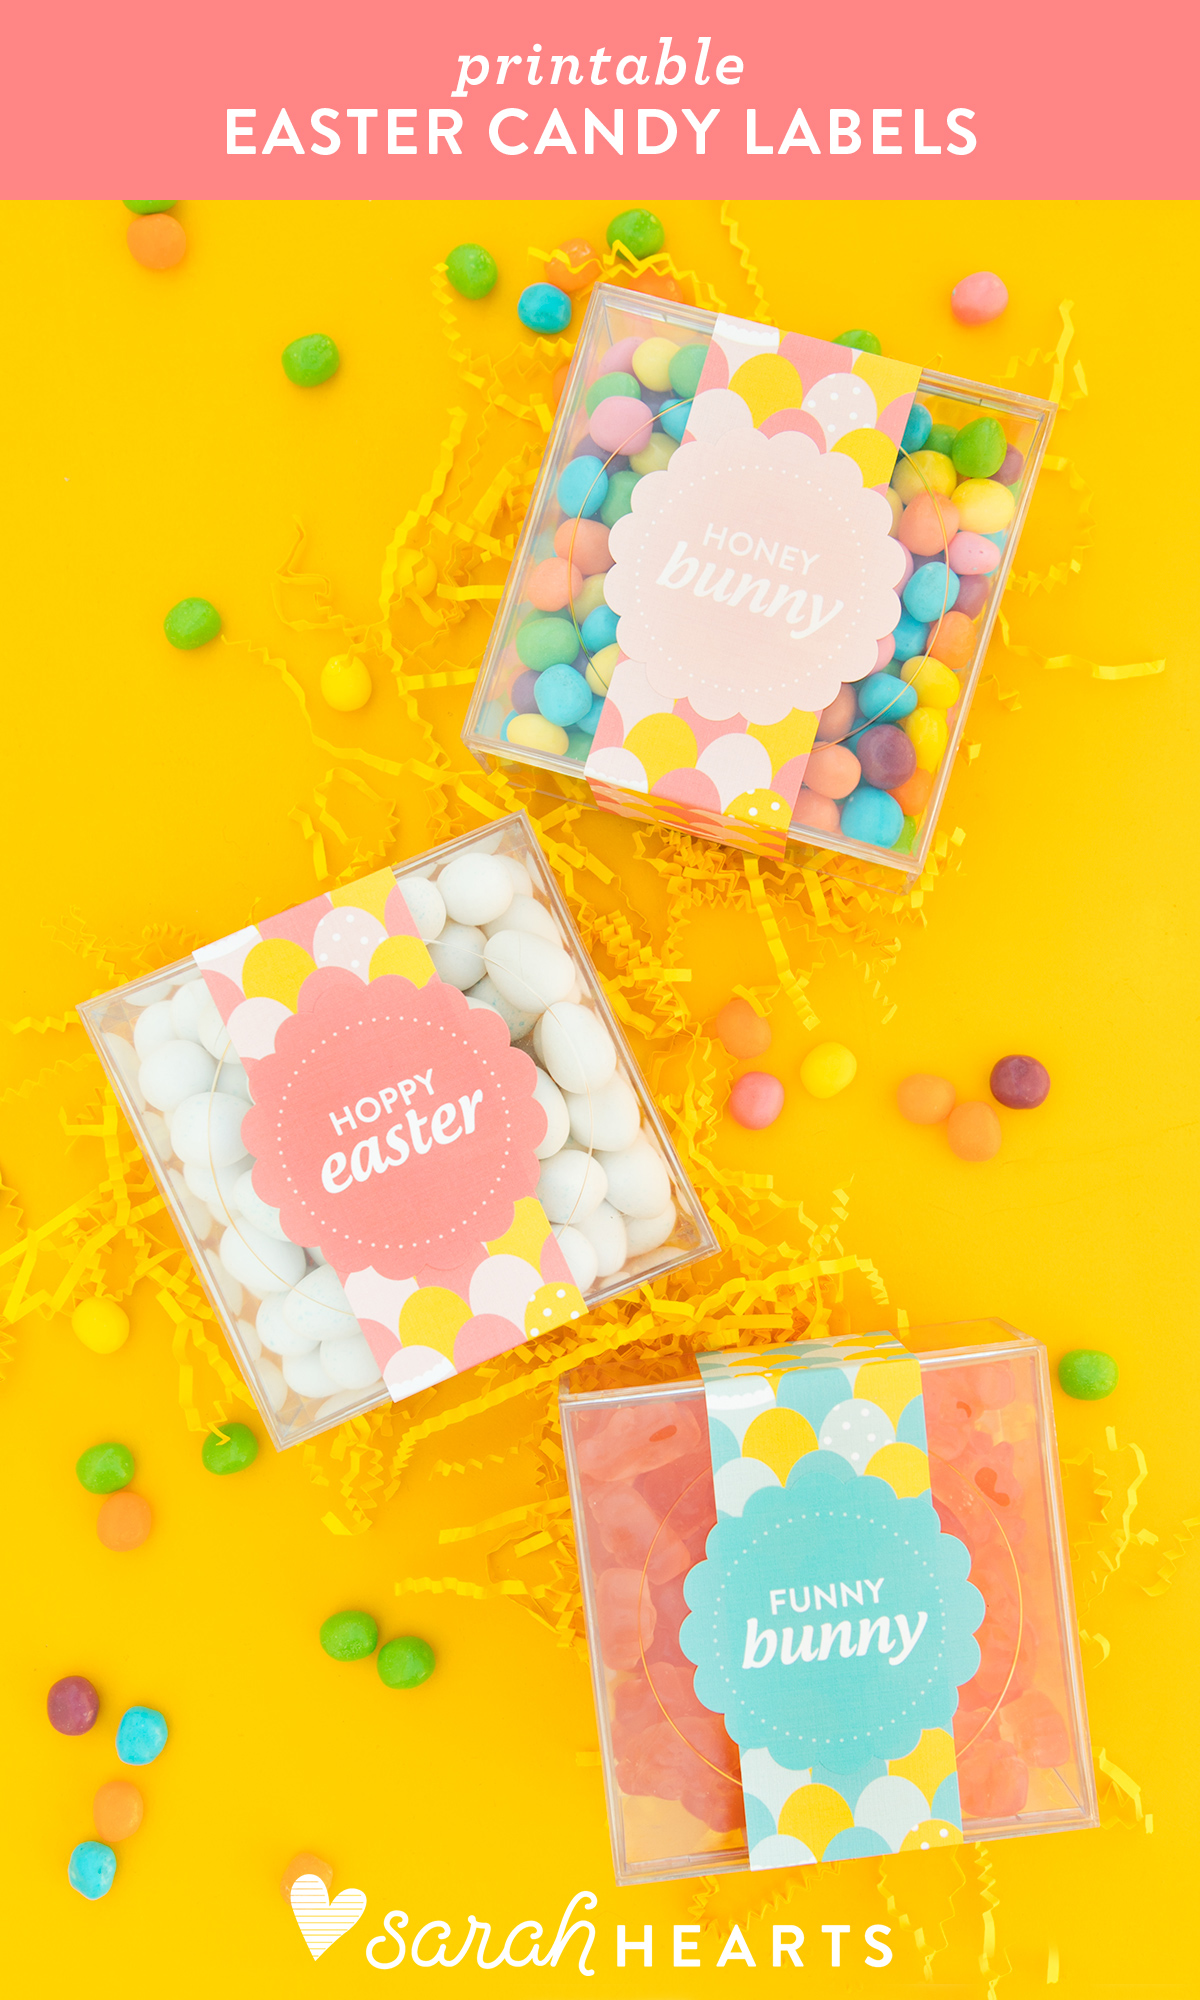 picture about Printable Candy Labels titled Printable Easter Sweet Box Labels - Sarah Hearts